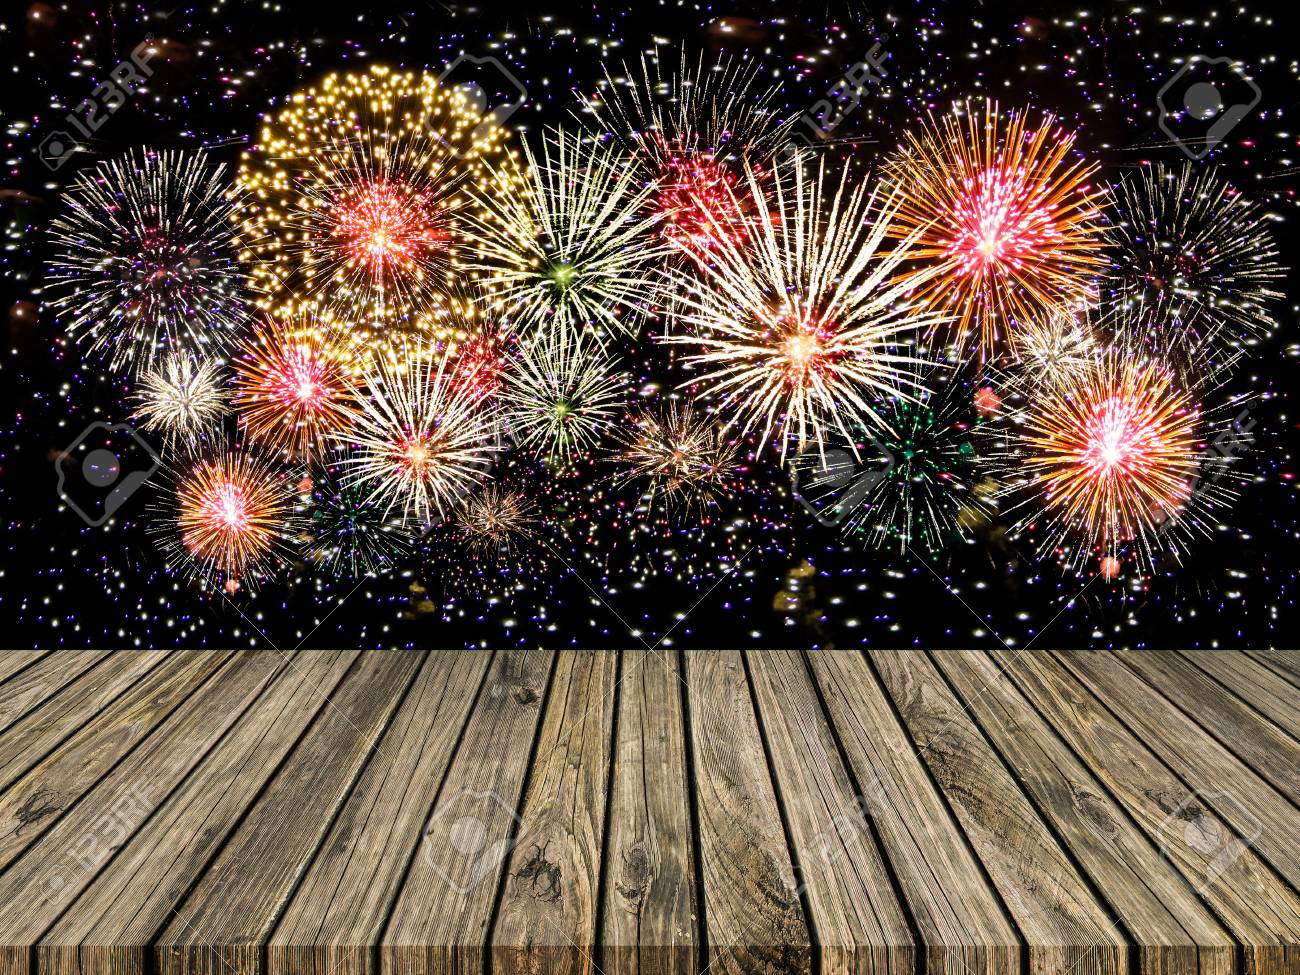 abstract empty wooden floor with fireworks background colorful